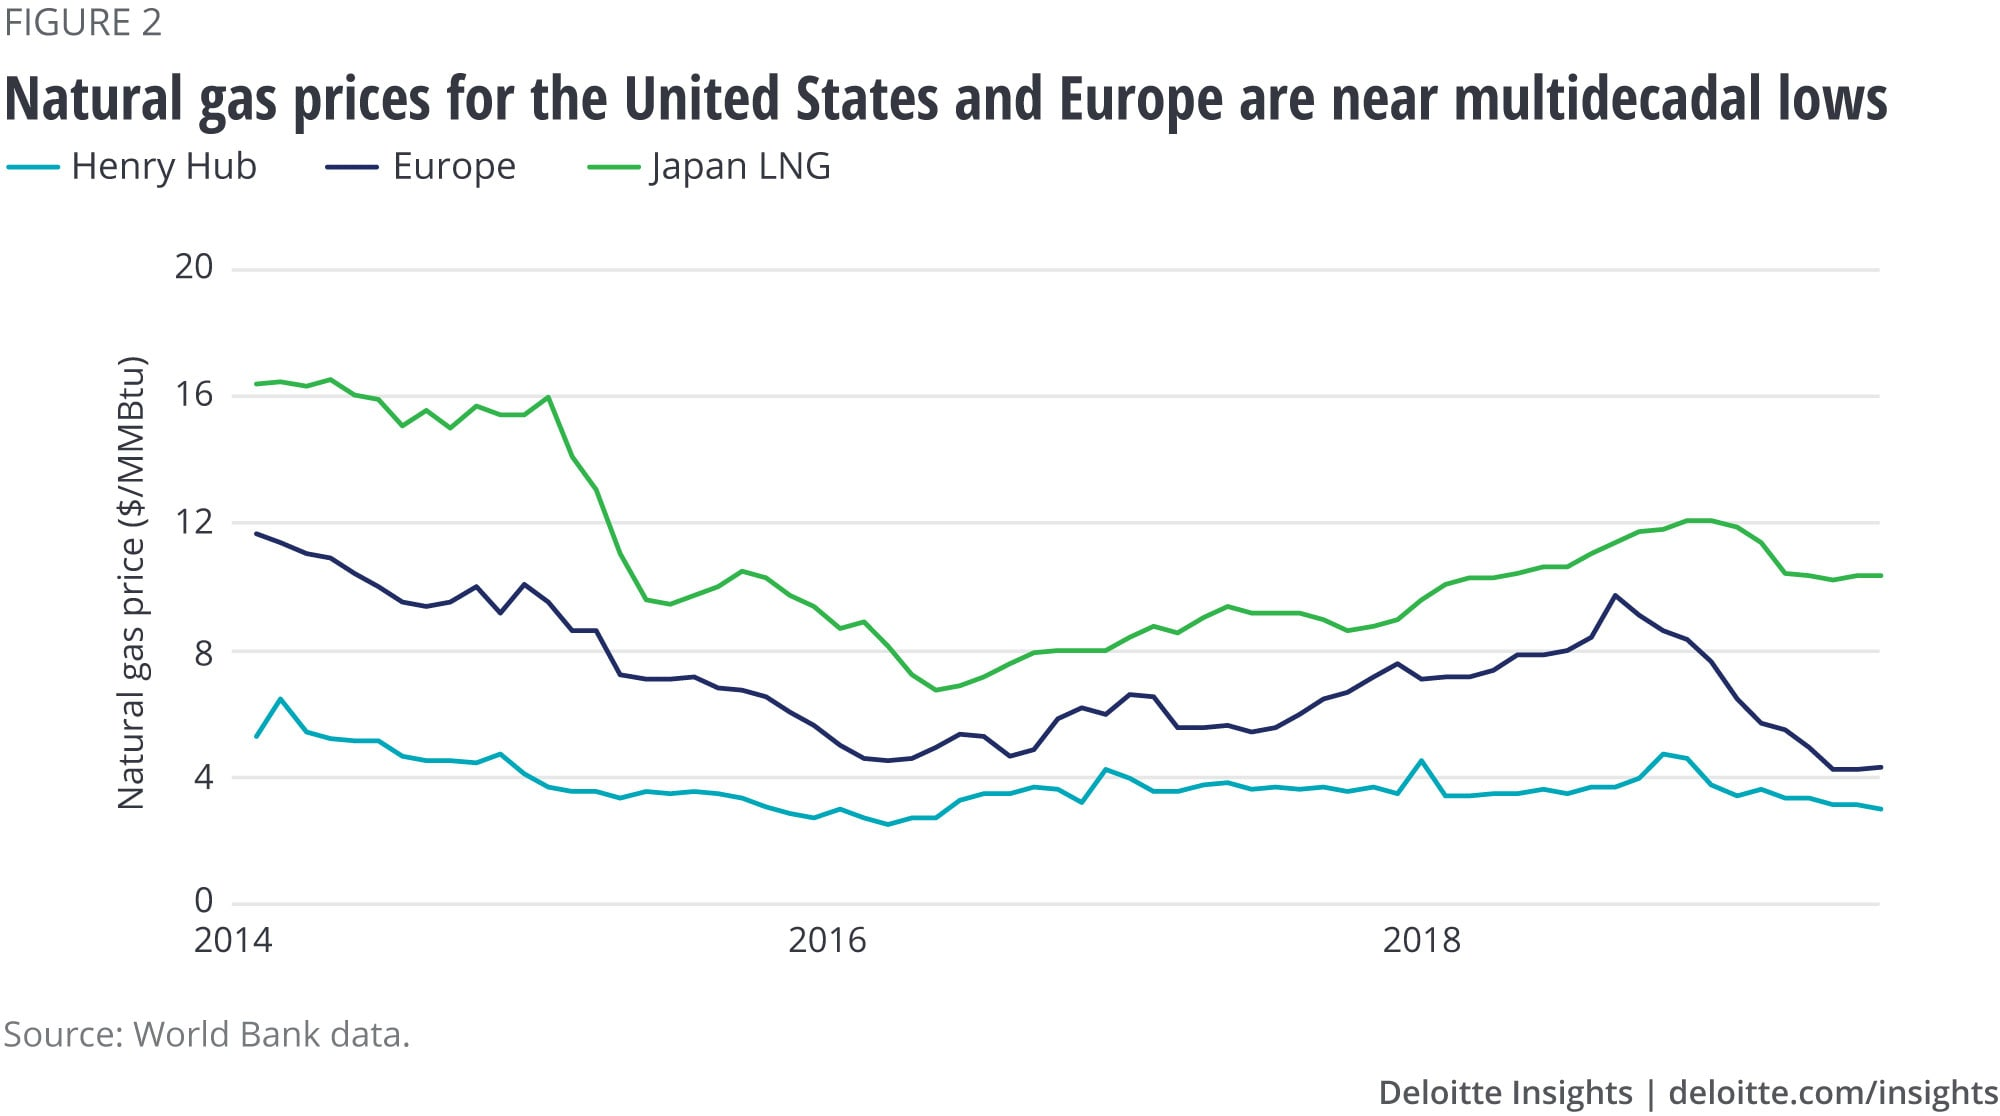 Natural gas prices for United States and Europe are near multidecadal lows